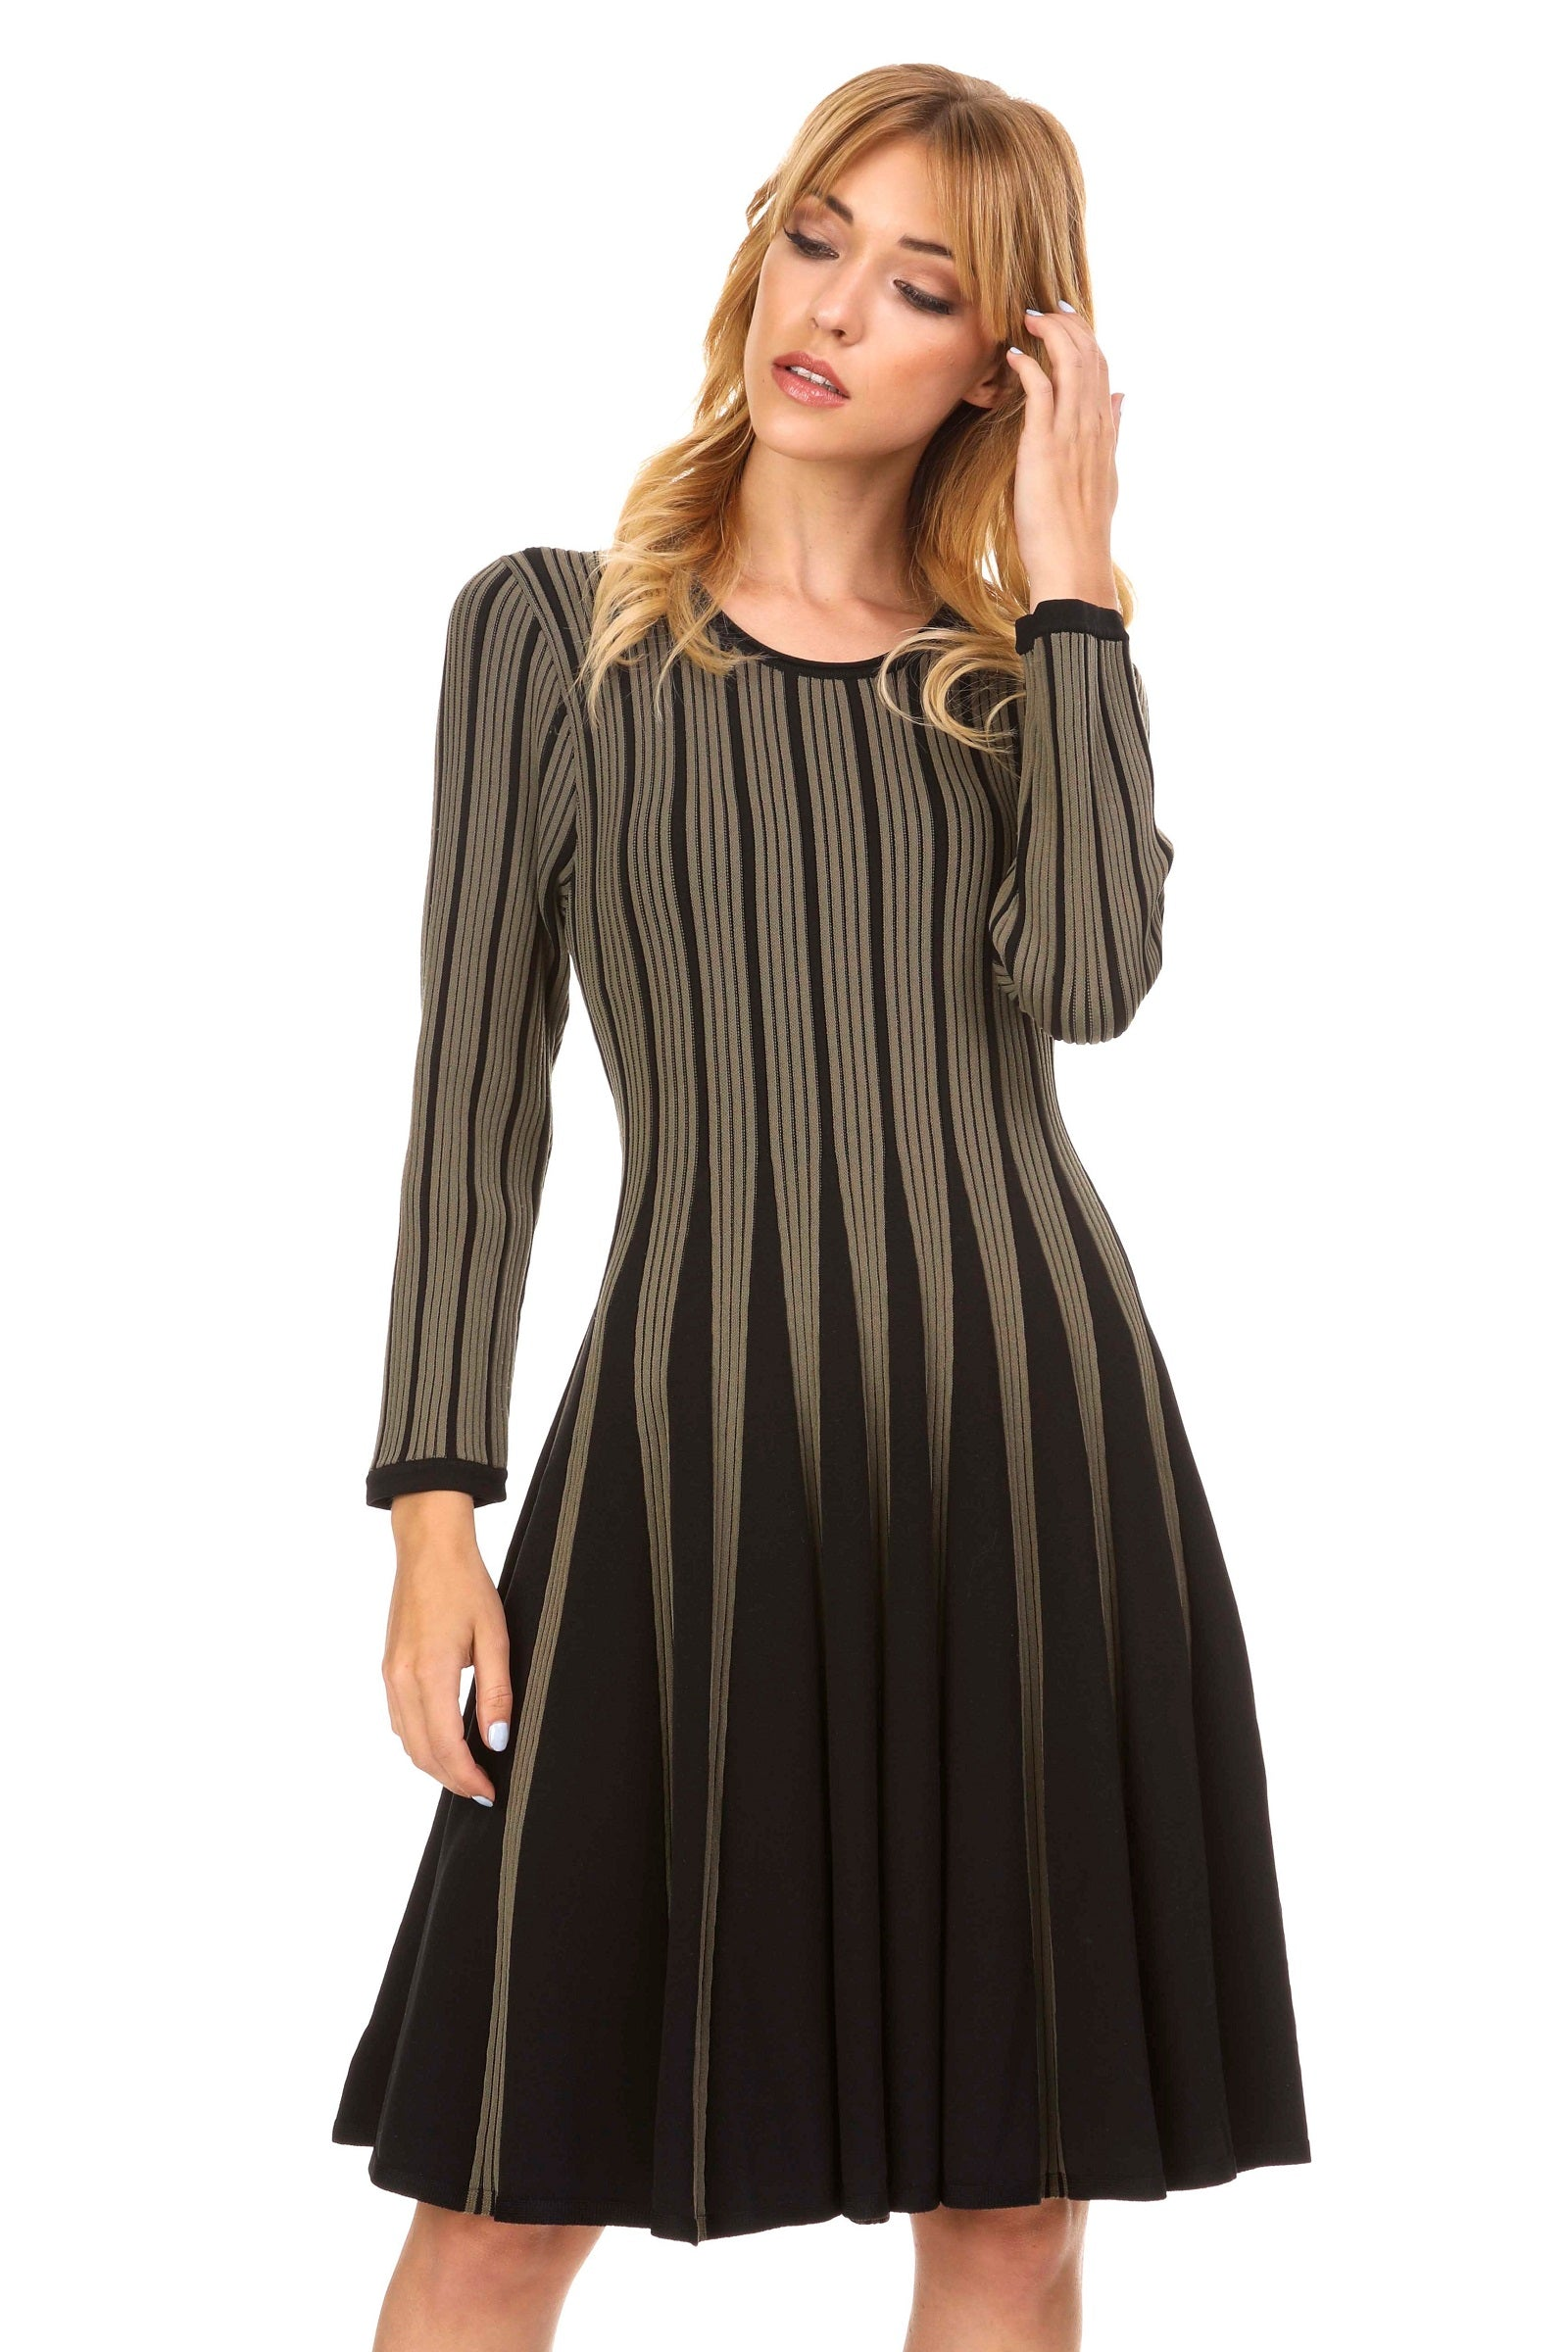 Contemporary Fit and Flare Knit Dress